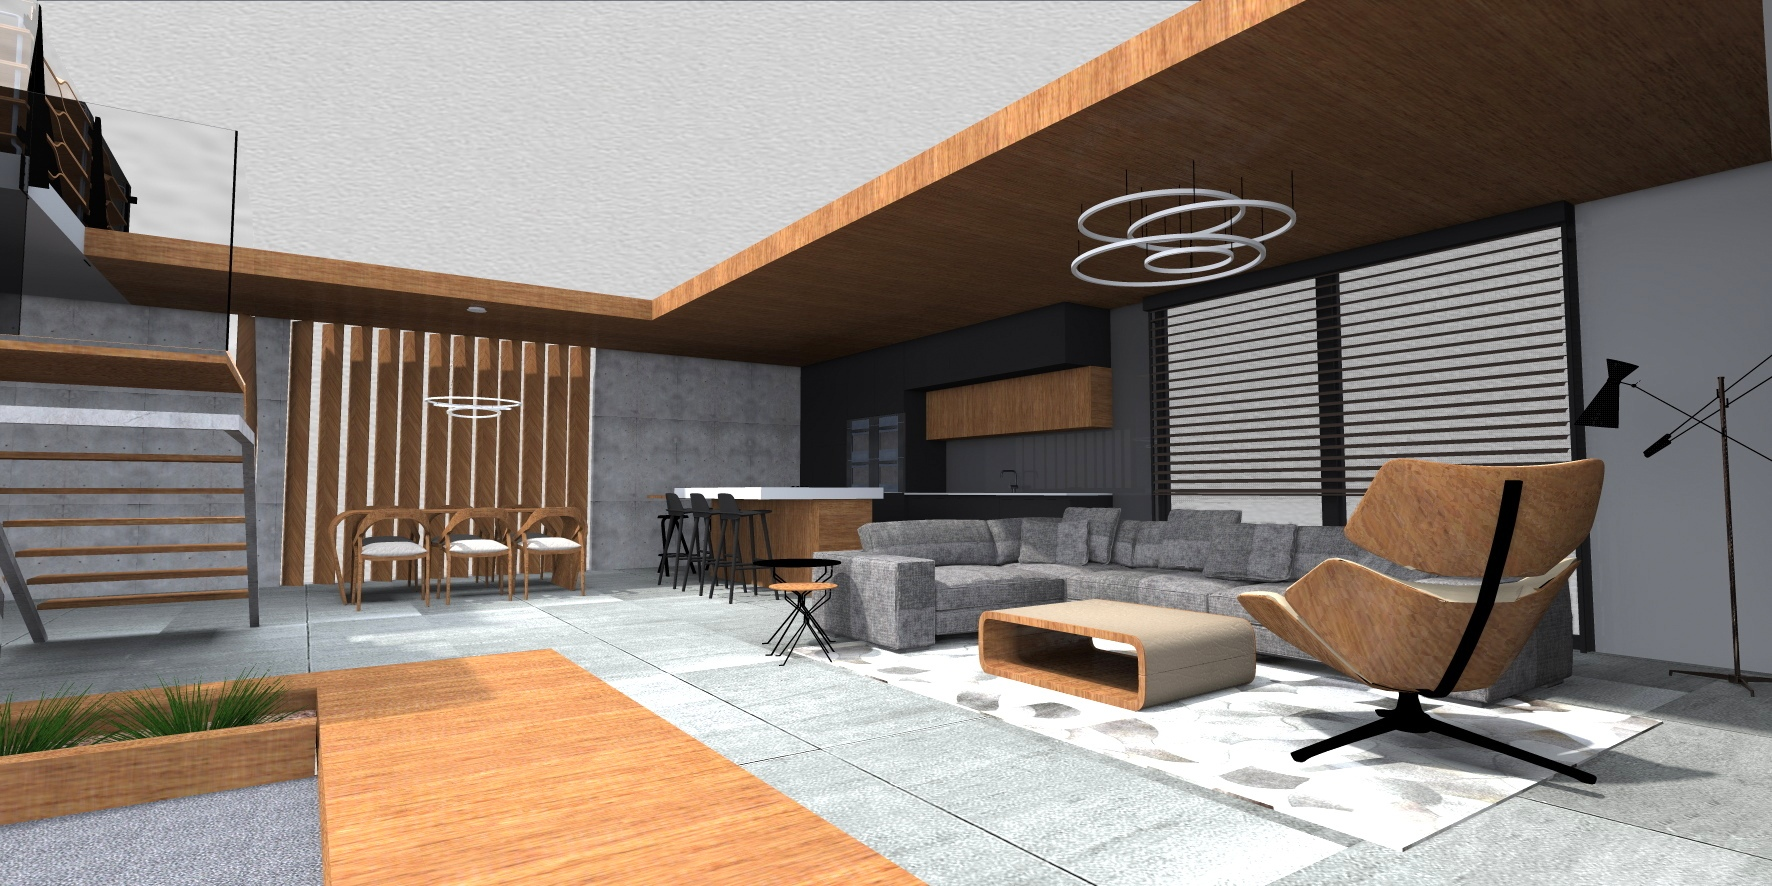 Year in one of the pavilions featuring the homedesign interior design theme the 150 square meter size spread out apartment will present the most